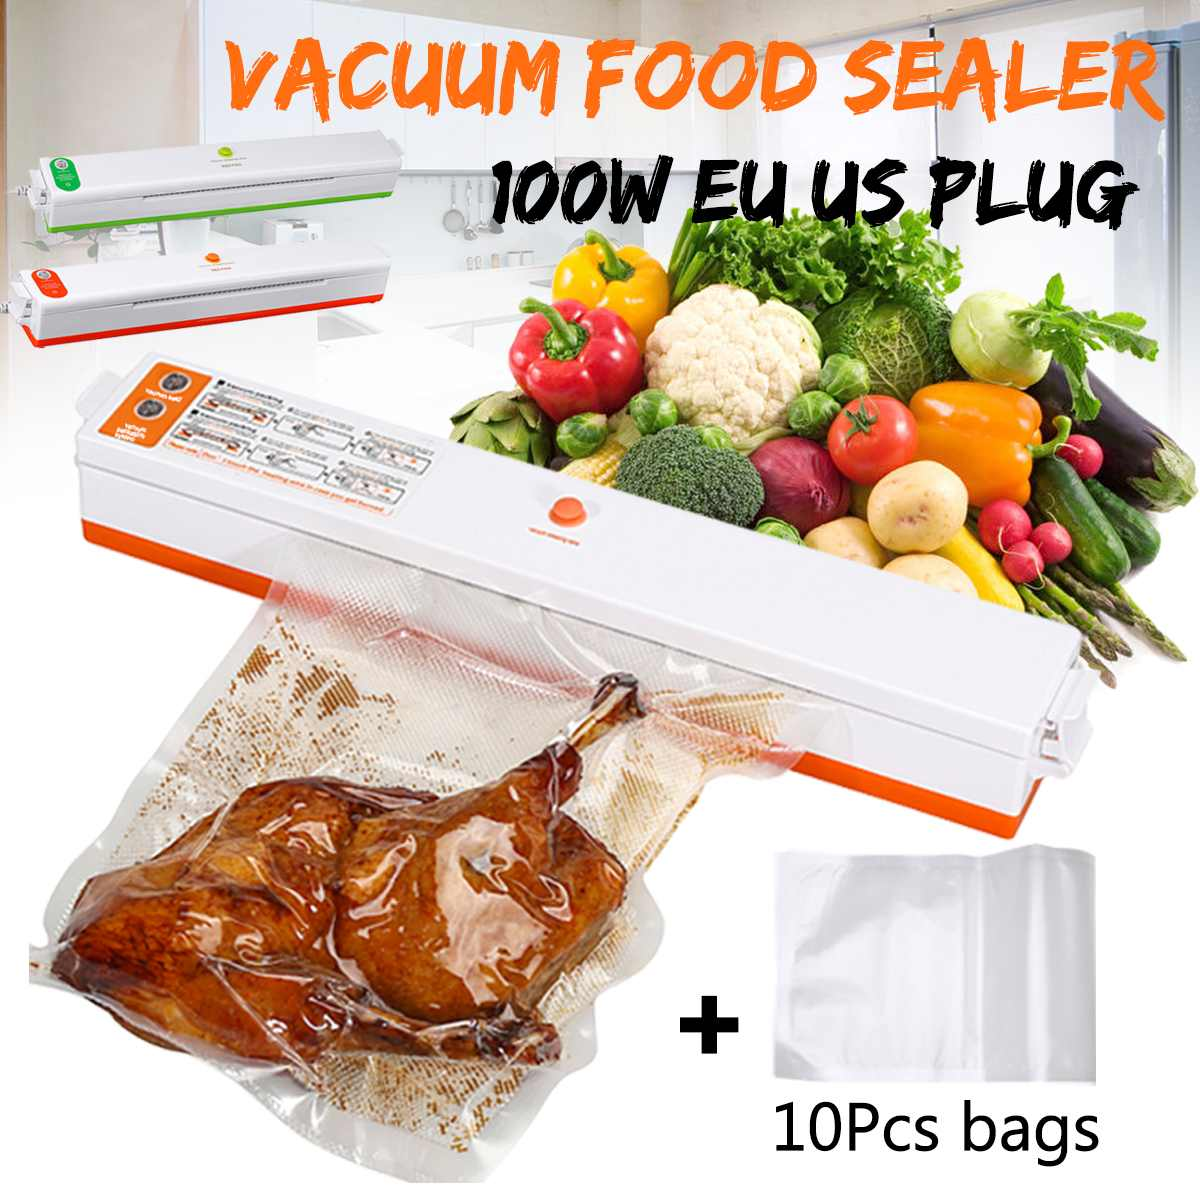 Green 200V Household Food Vacuum Sealer Packaging Auto Machine Film Sealer Vacuum Packer Including With 10Pcs Bags EU/US Plugs